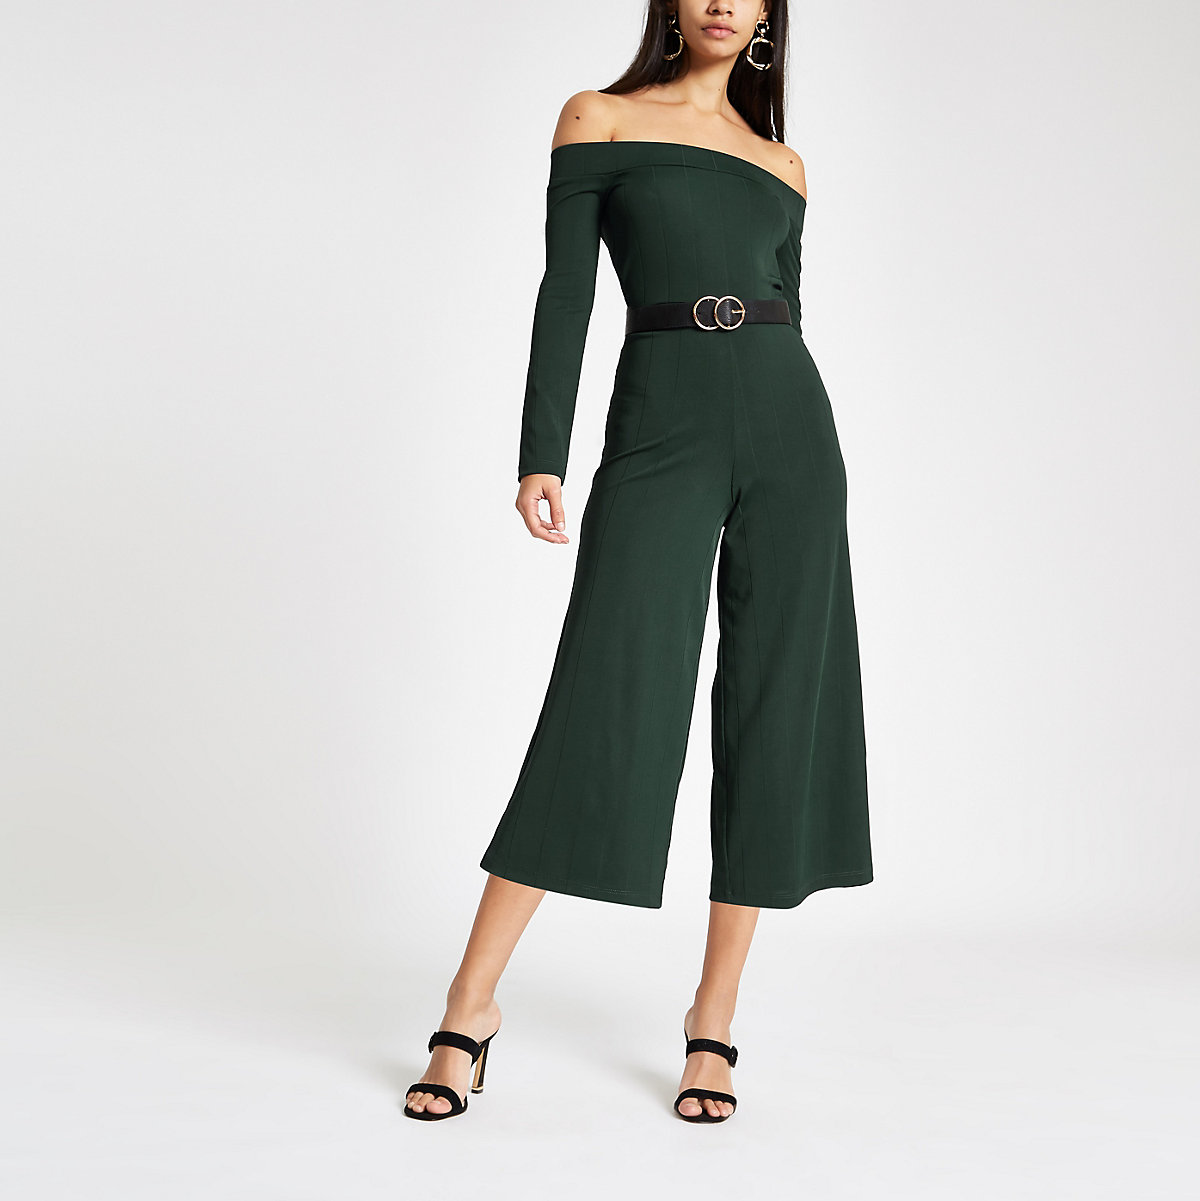 Green bardot neck wide leg jumpsuit